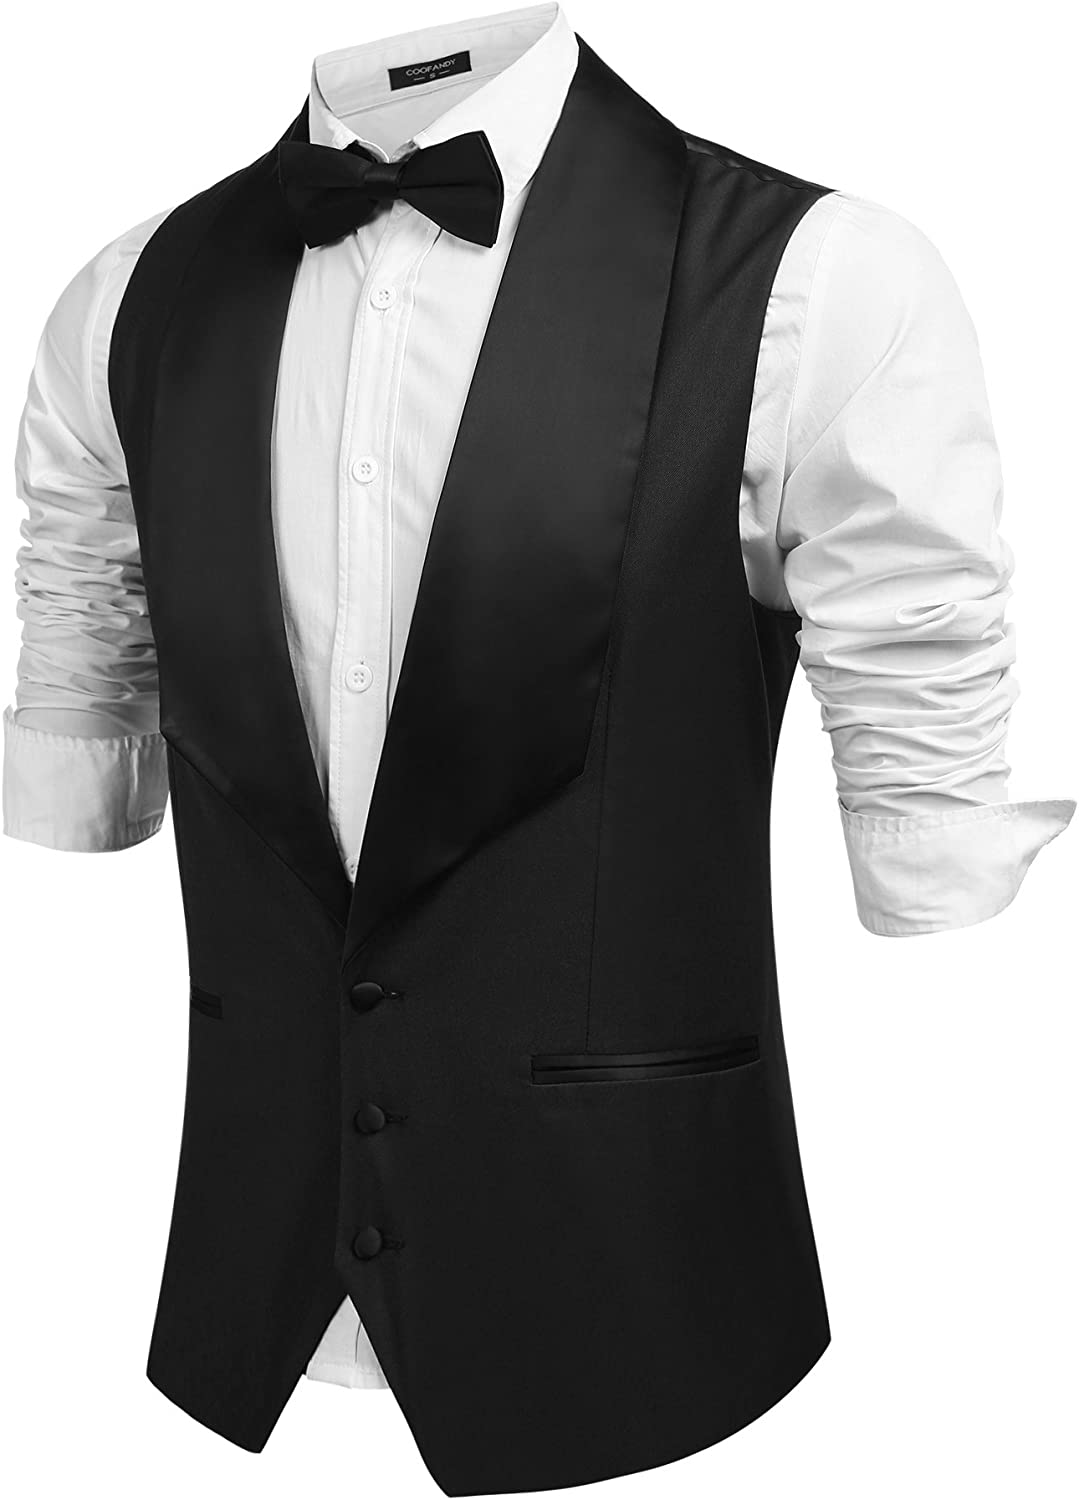 1930s Men's Fashion Guide- What Did Men Wear? Coofandy Mens V-Neck Slim Fit Dress Suit Sleeveless Vest Waistcoat $31.99 AT vintagedancer.com